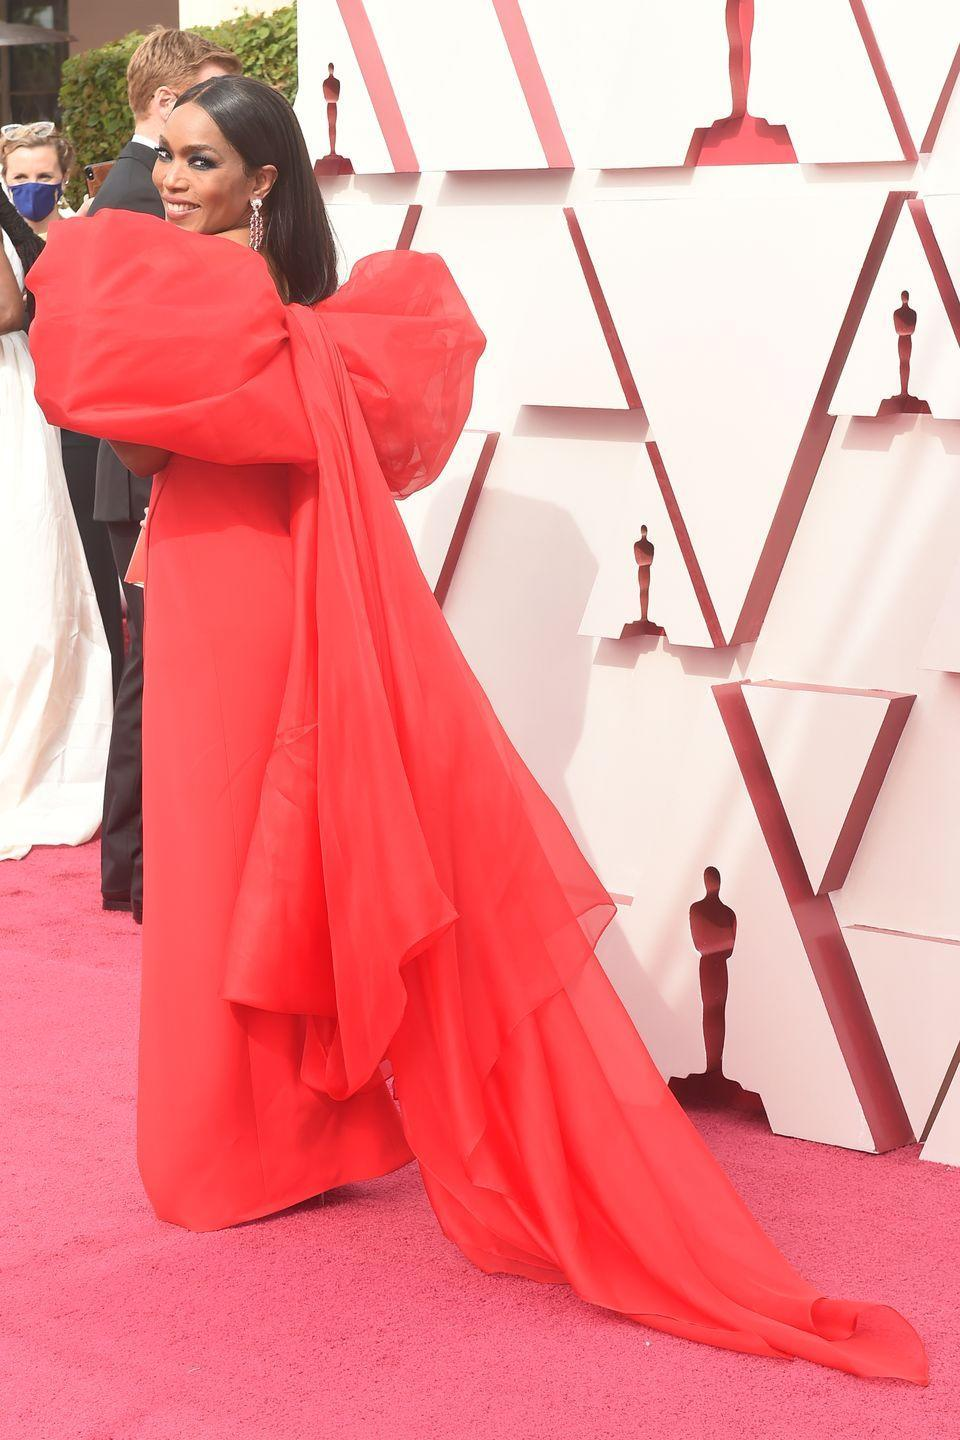 <p>There was more red-carpet drama courtesy of Angela Bassett, who wore a bright red gown from Alberta Ferretti, which featured a giant bow on the back. The off-the-shoulder gown, styled by Jennifer Austin, was teamed with some delicate Chopard jewellery, which perfectly finished off the glamorous look.</p>